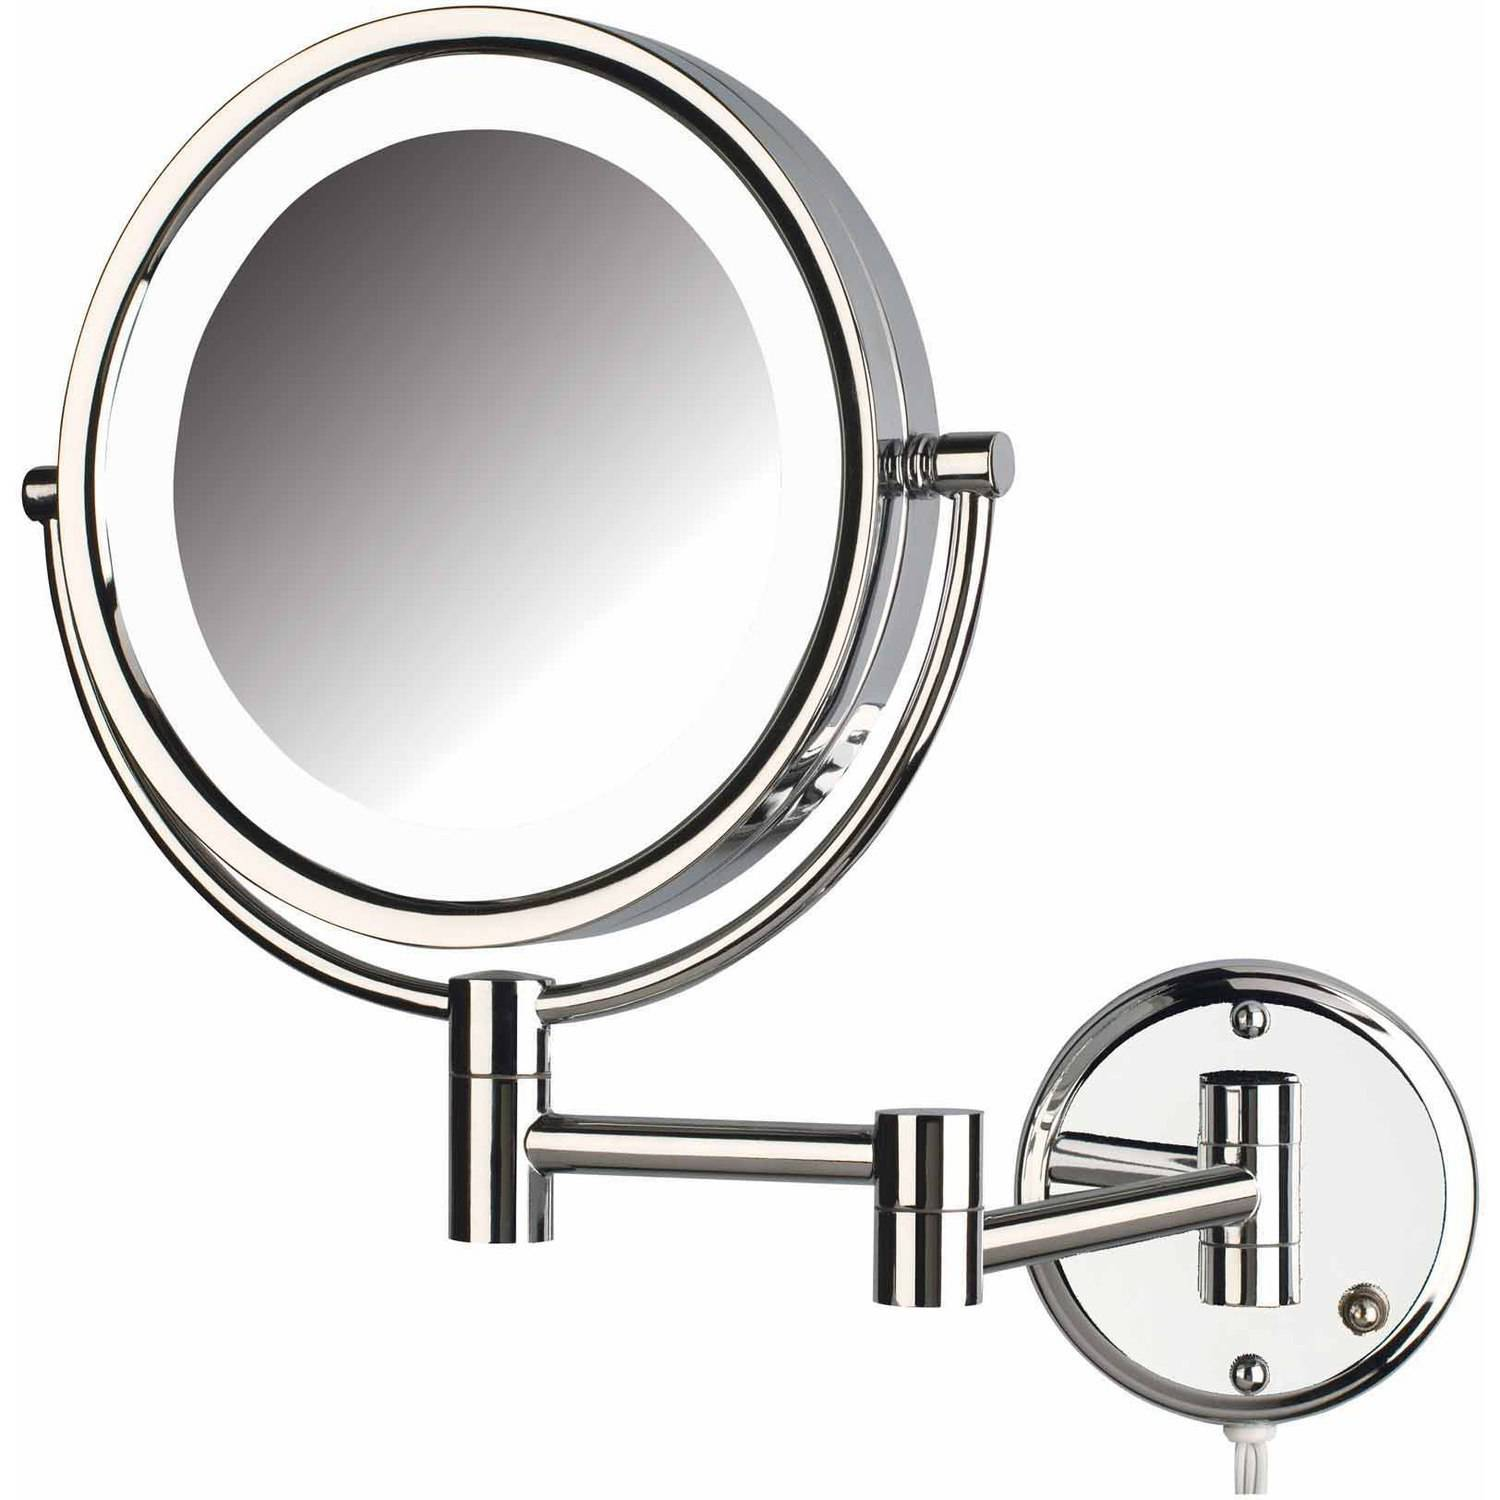 Jerdon Hl88cl 8 5 Led Lighted Wall Mount Makeup Mirror With 8x Magnification Chrome Finish